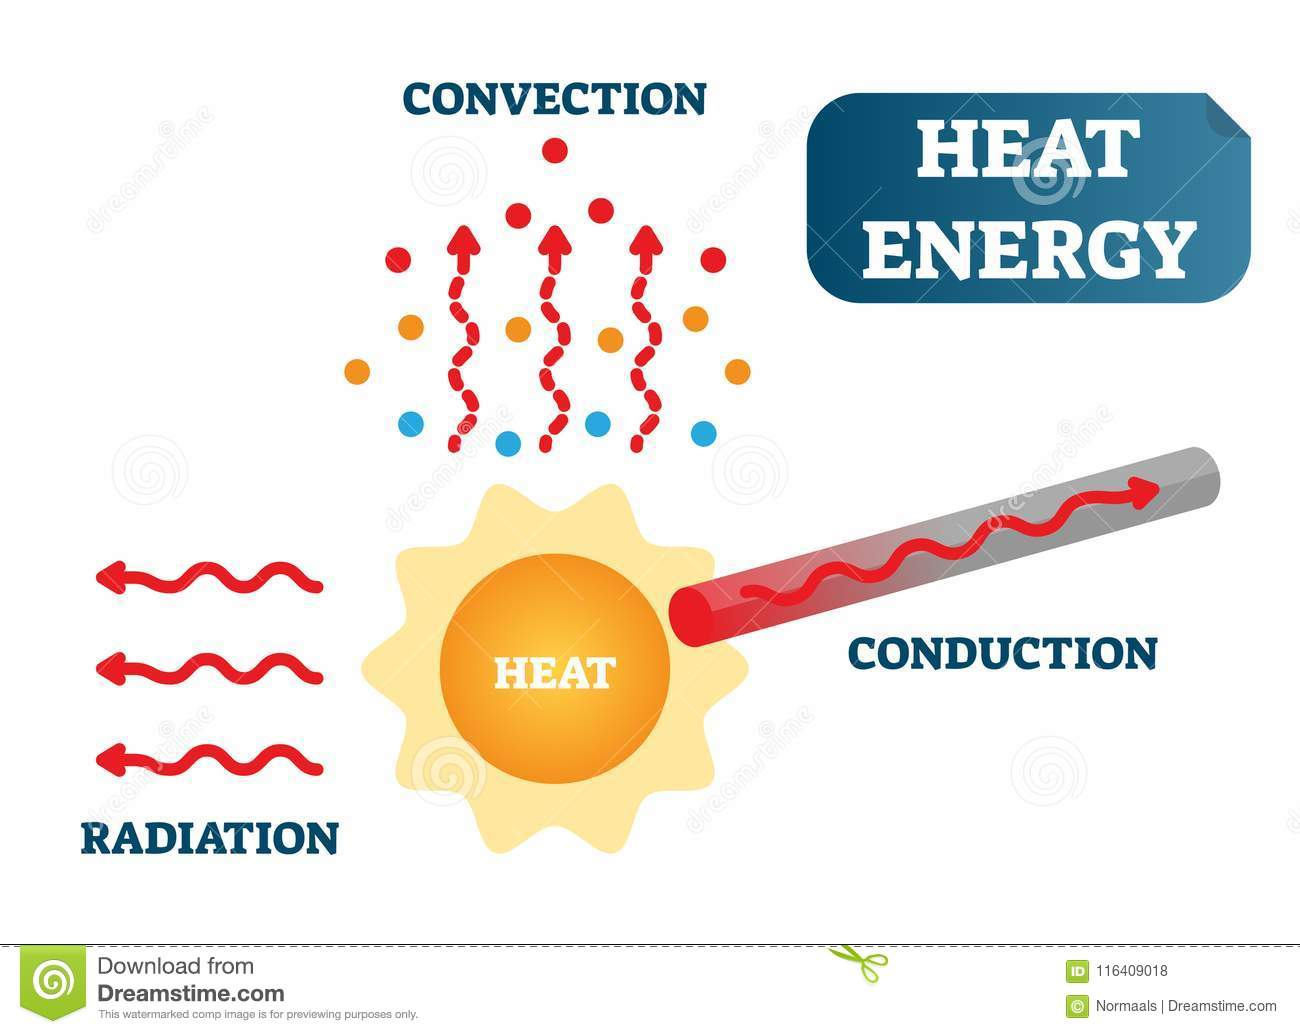 heat energy as convection conduction radiation physics science vector illustration poster diagram heat energy as convection 116409018 heat energy as convection, conduction and radiation, physics science